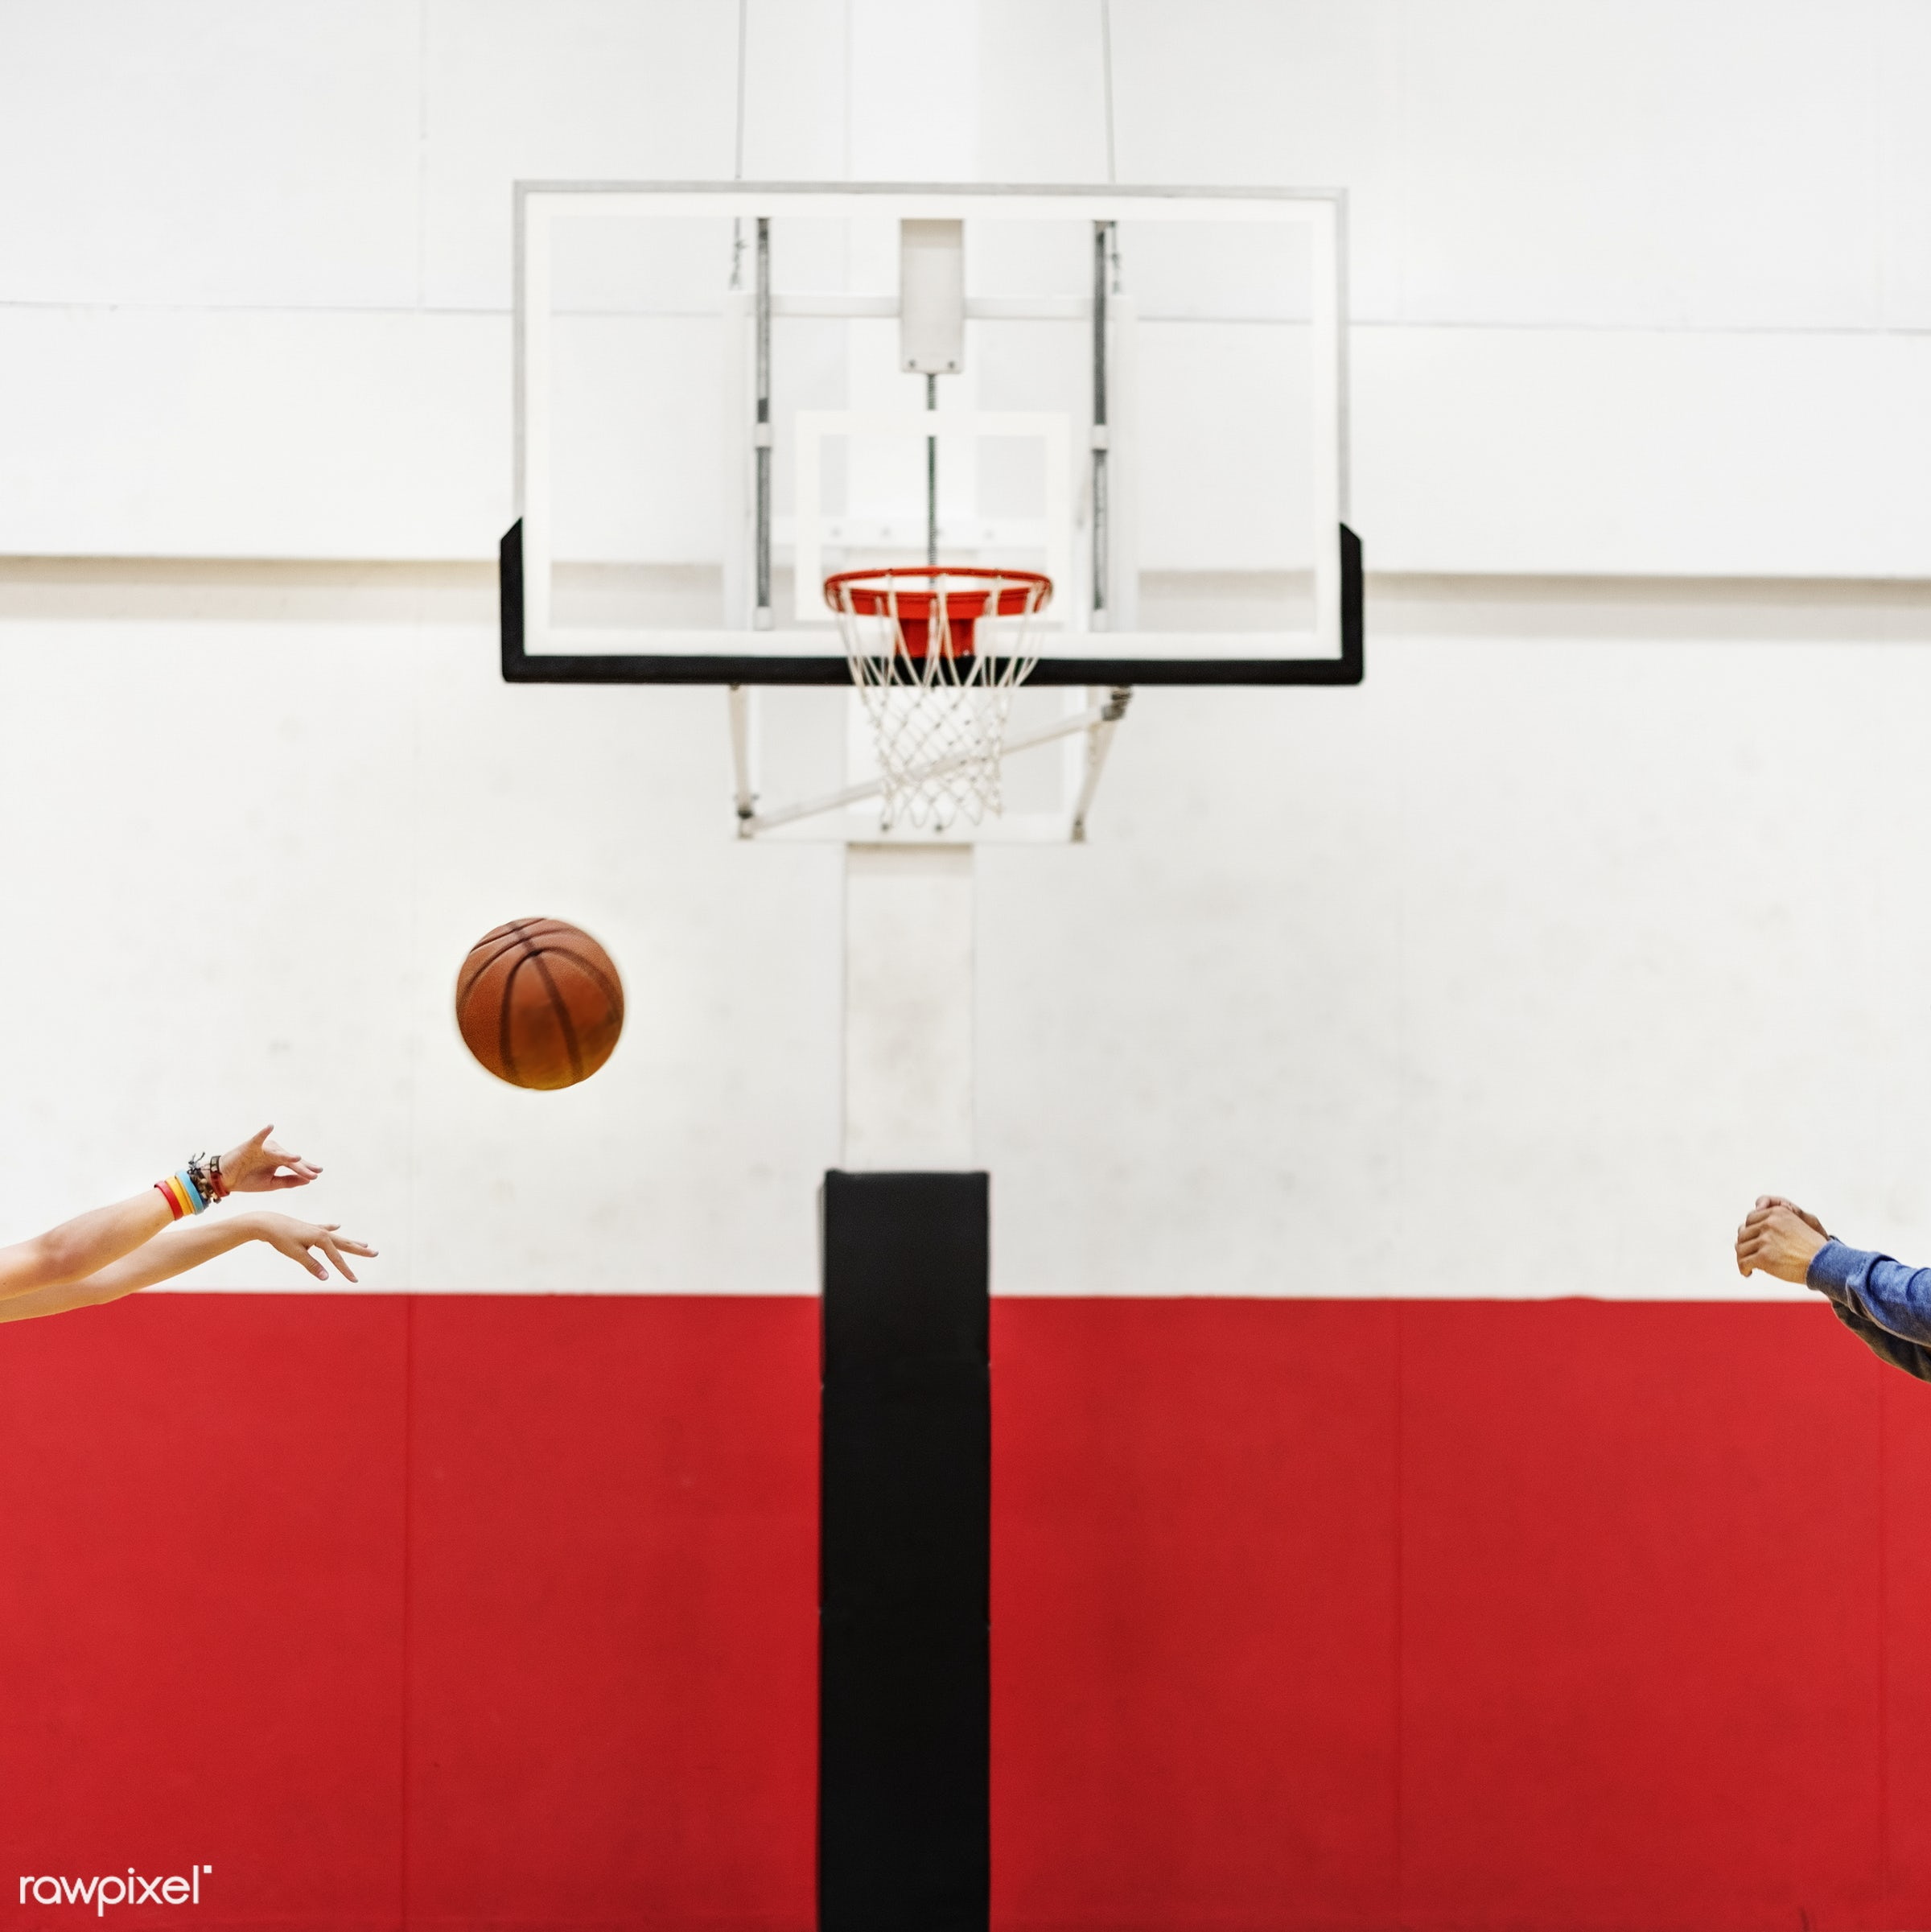 basketball, court, exercise, net, shot, throwing, training, playing, hands, arena, loop, gym, activity, ball, sport, hoop,...